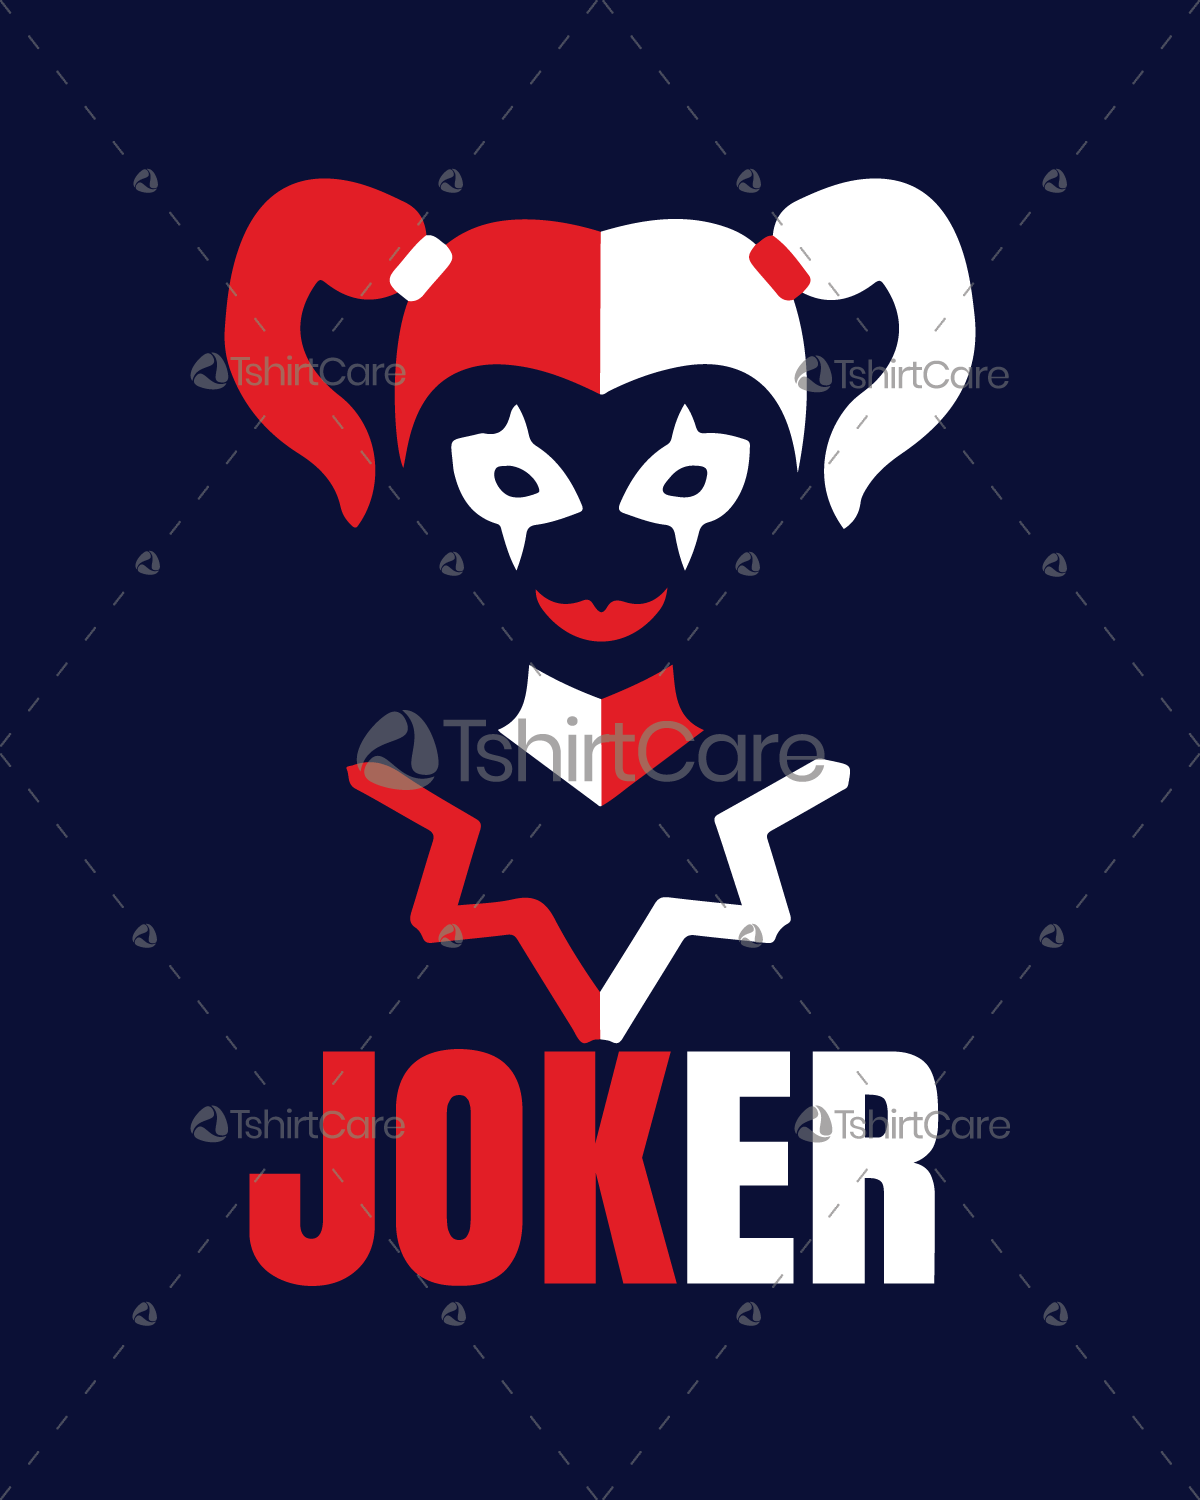 His Harley Quinn Suicide squad Joker T Shirt Design for cool ... c30aacc3b